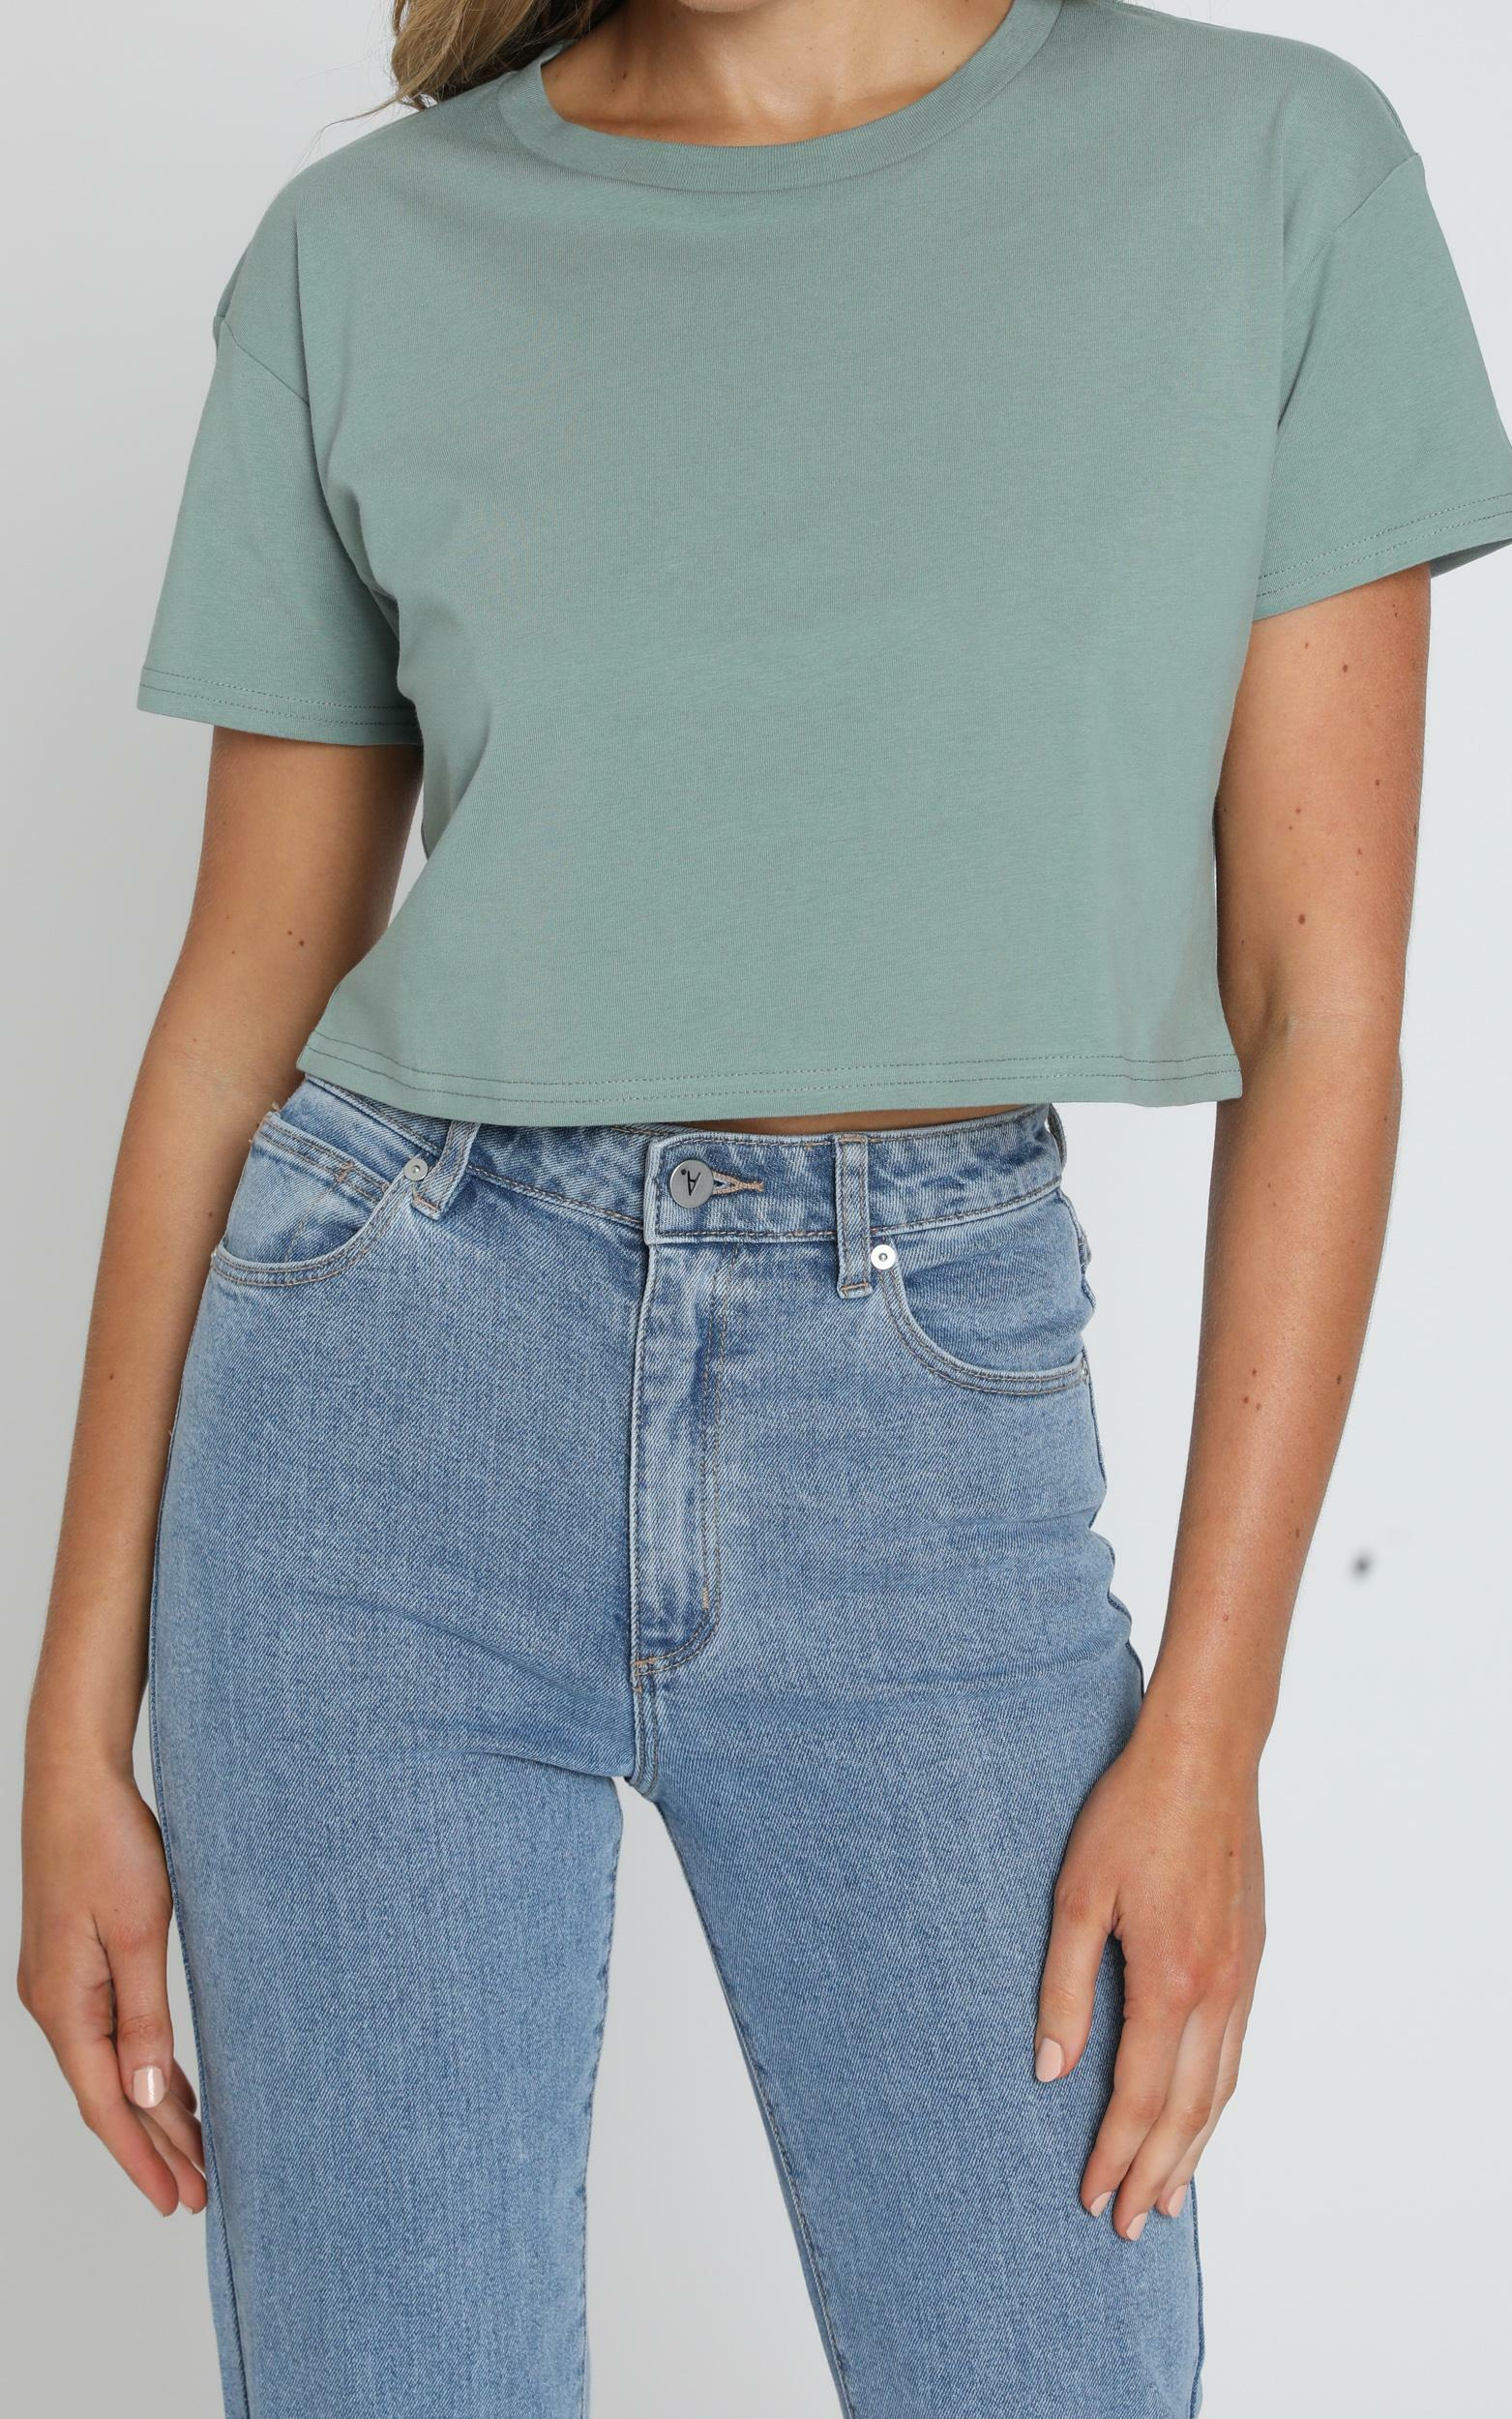 AS Colour - Crop Tee in Sage - XS, Sage, hi-res image number null